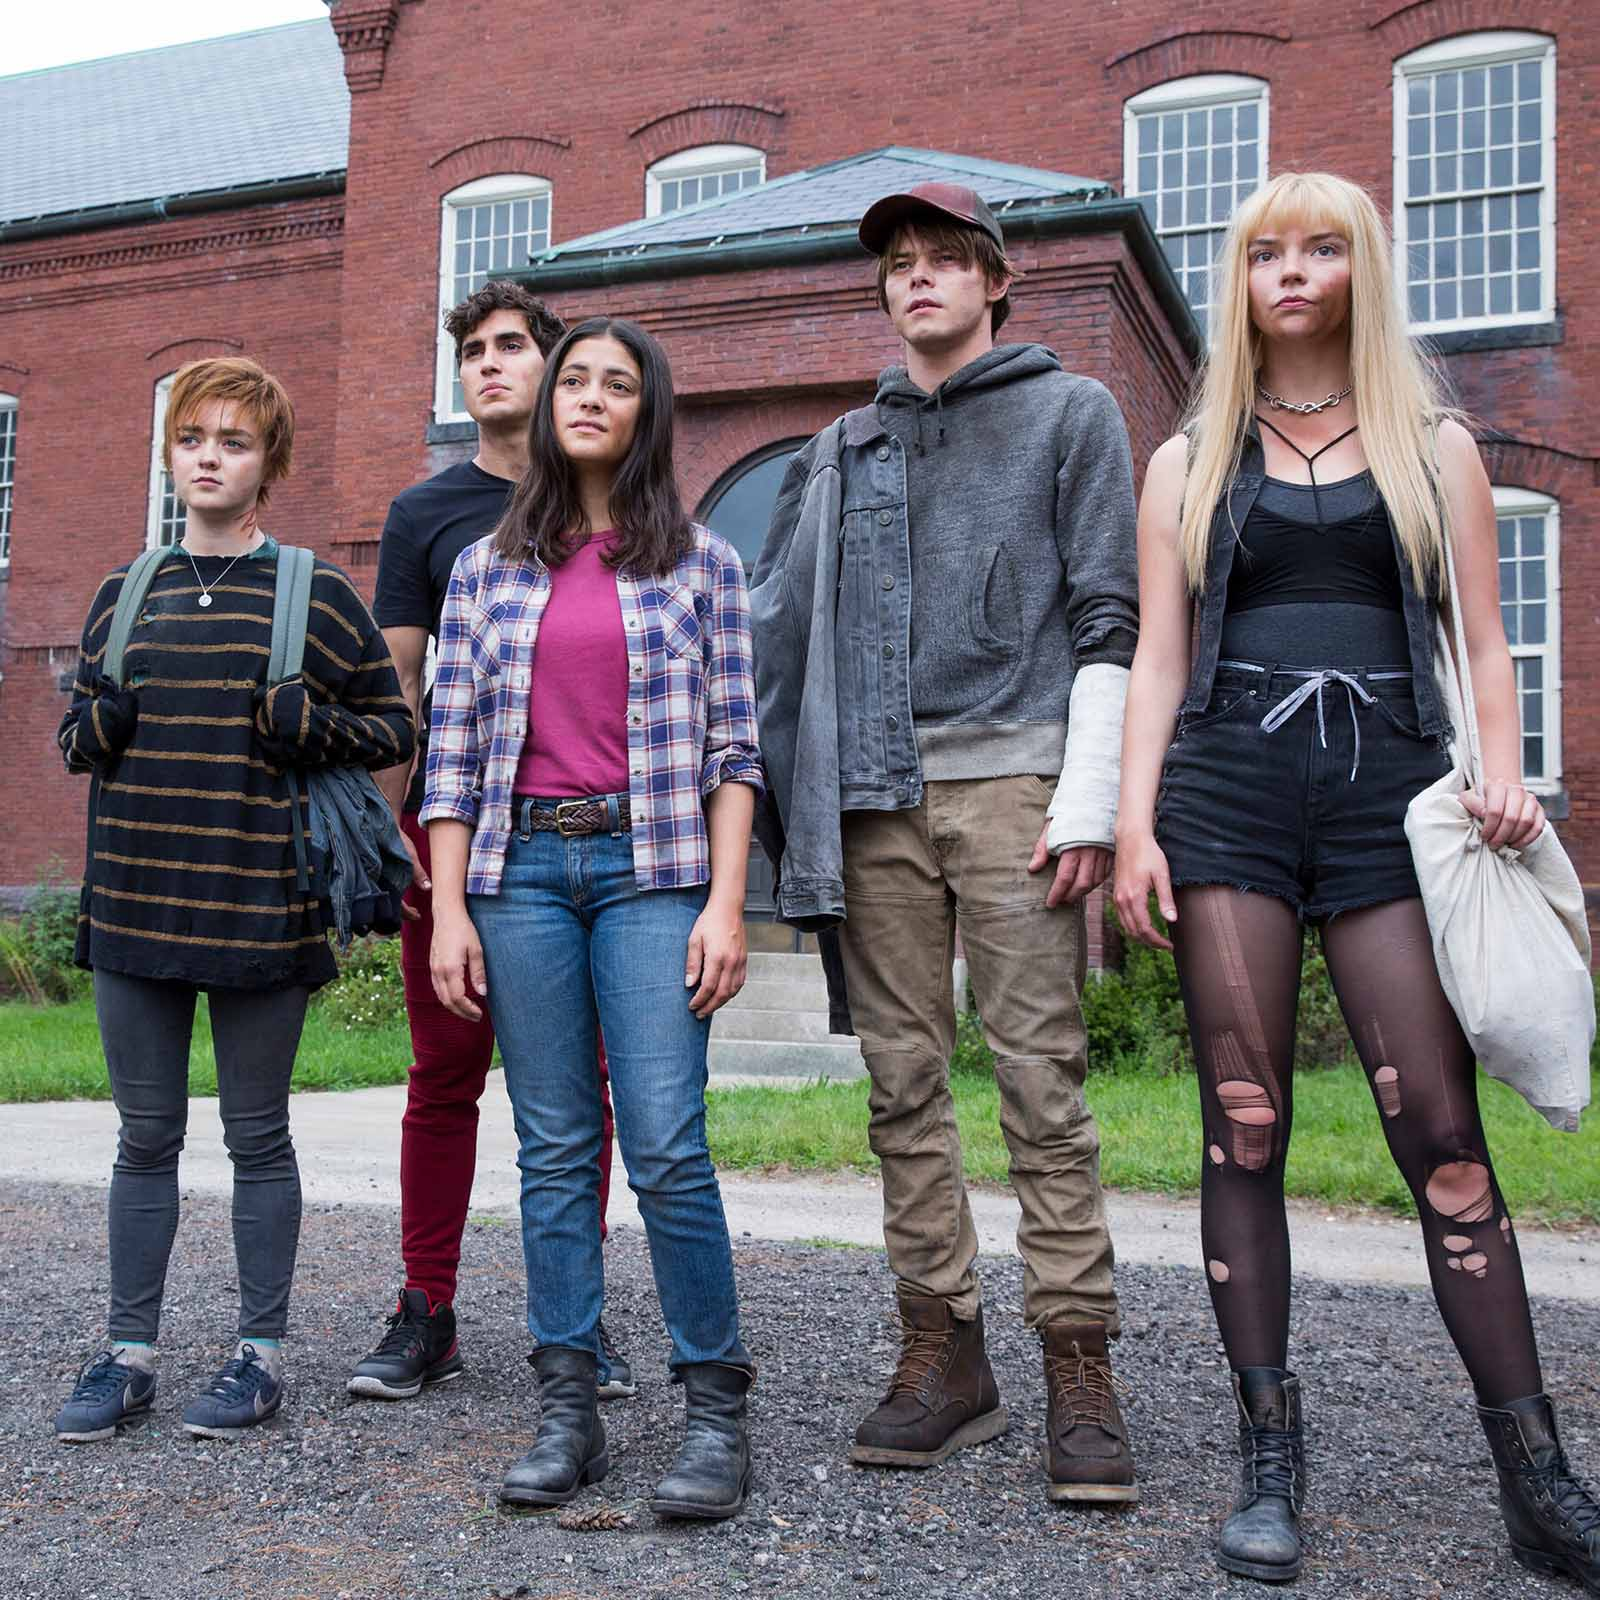 If you really want to watch 'The New Mutants' but don't want to spend your money on a mediocre movie, here's where to watch it.